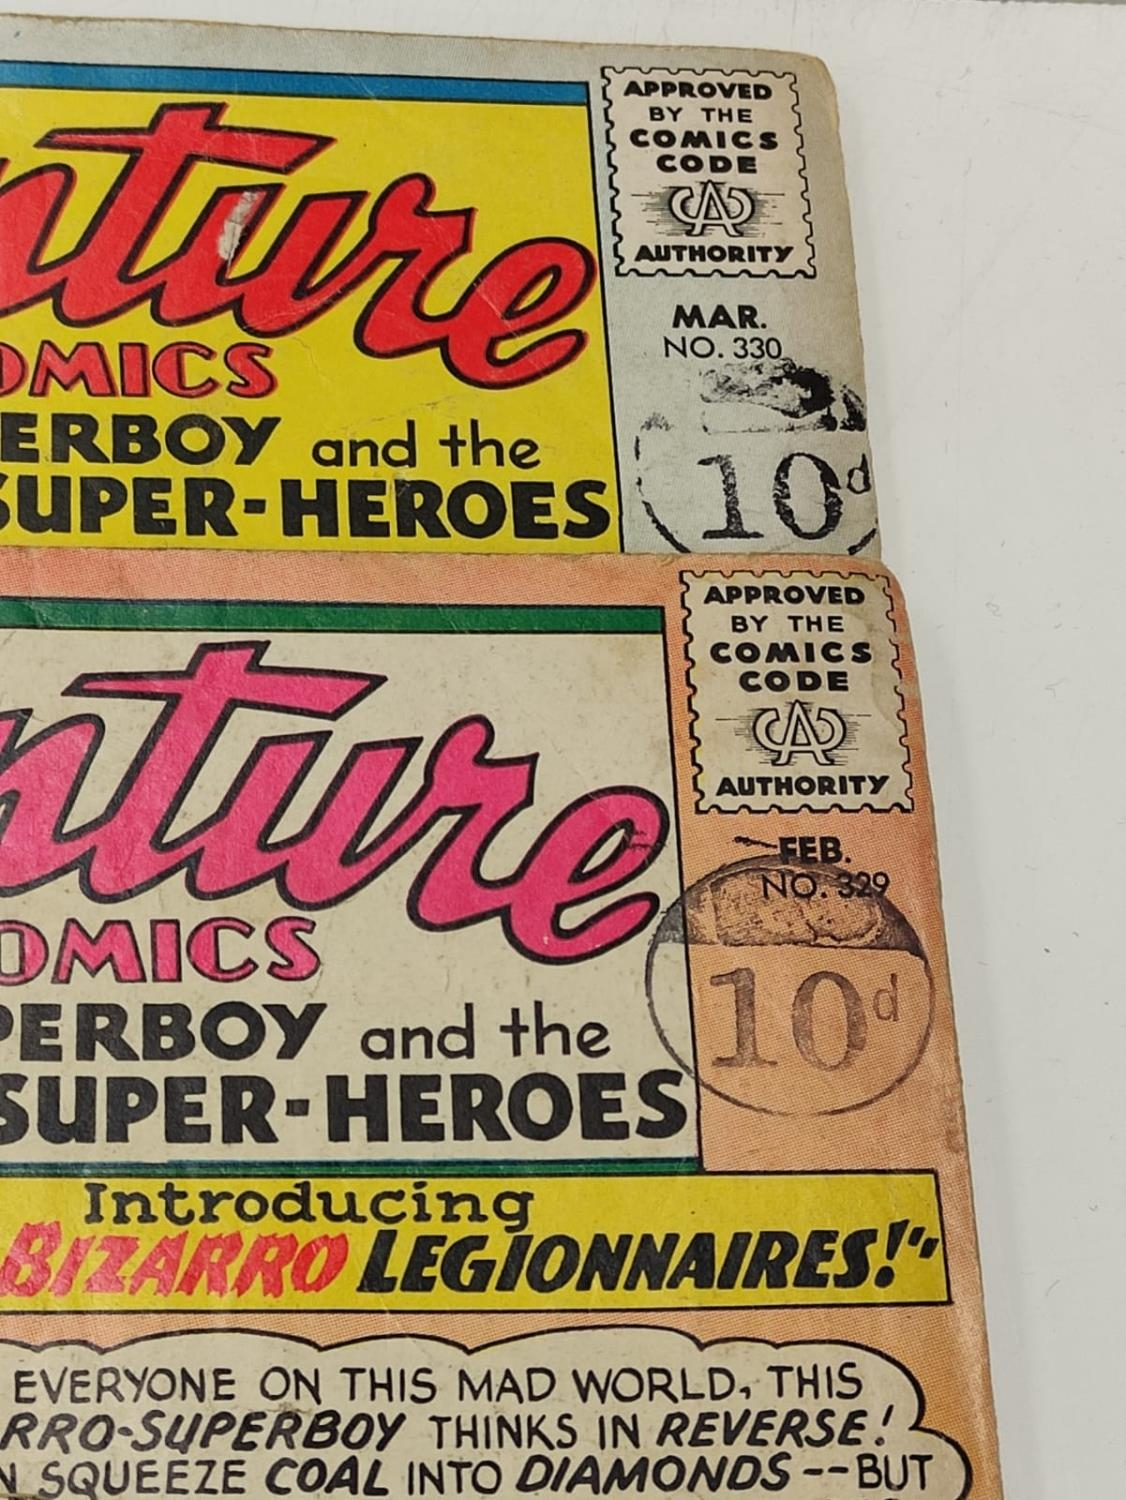 5 editions of DC Adventure Comics featuring Super-boy. - Image 7 of 19